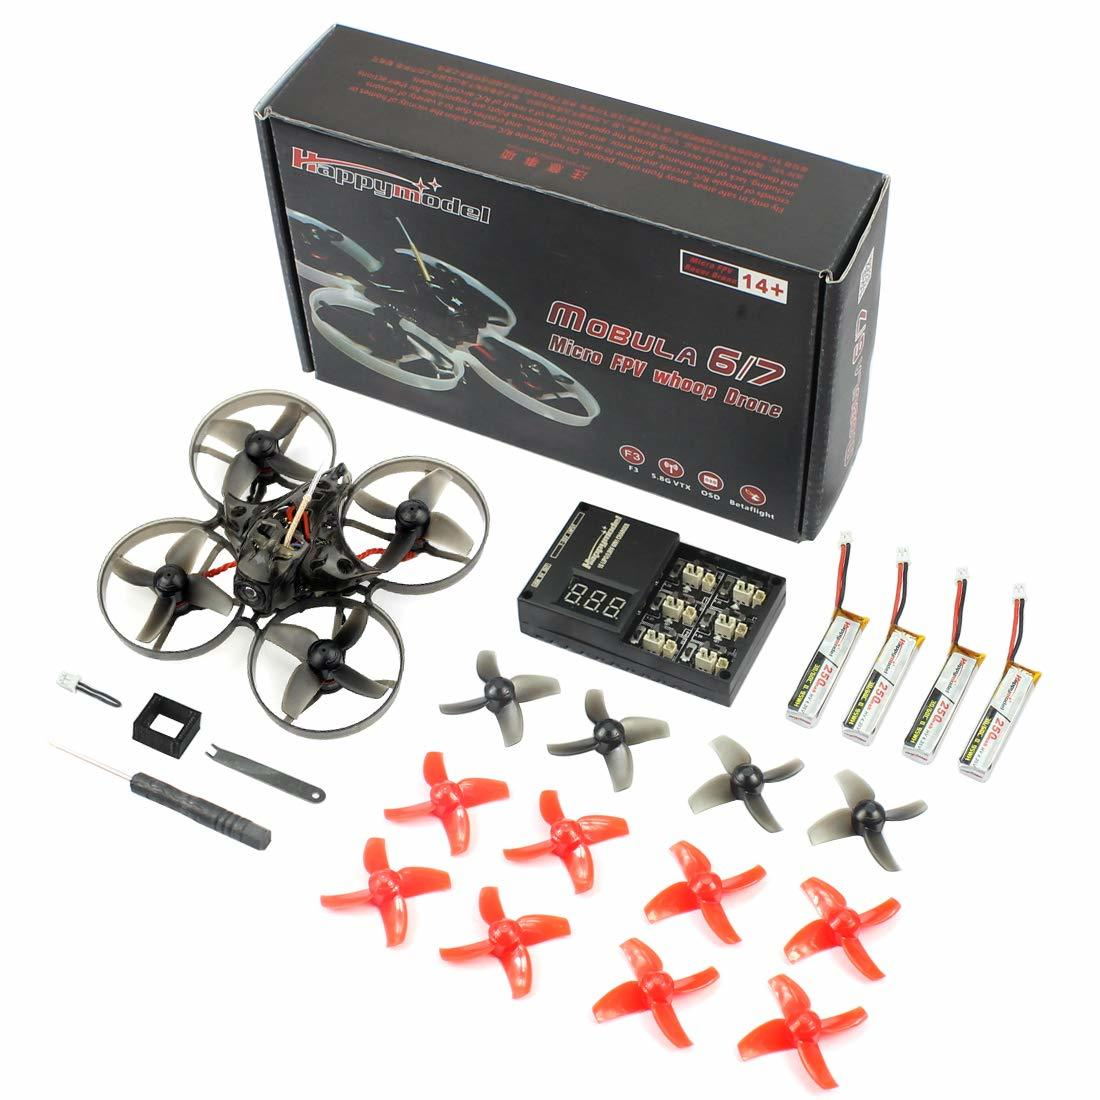 Mobula 7 2s whoop contents UK by Happymodel